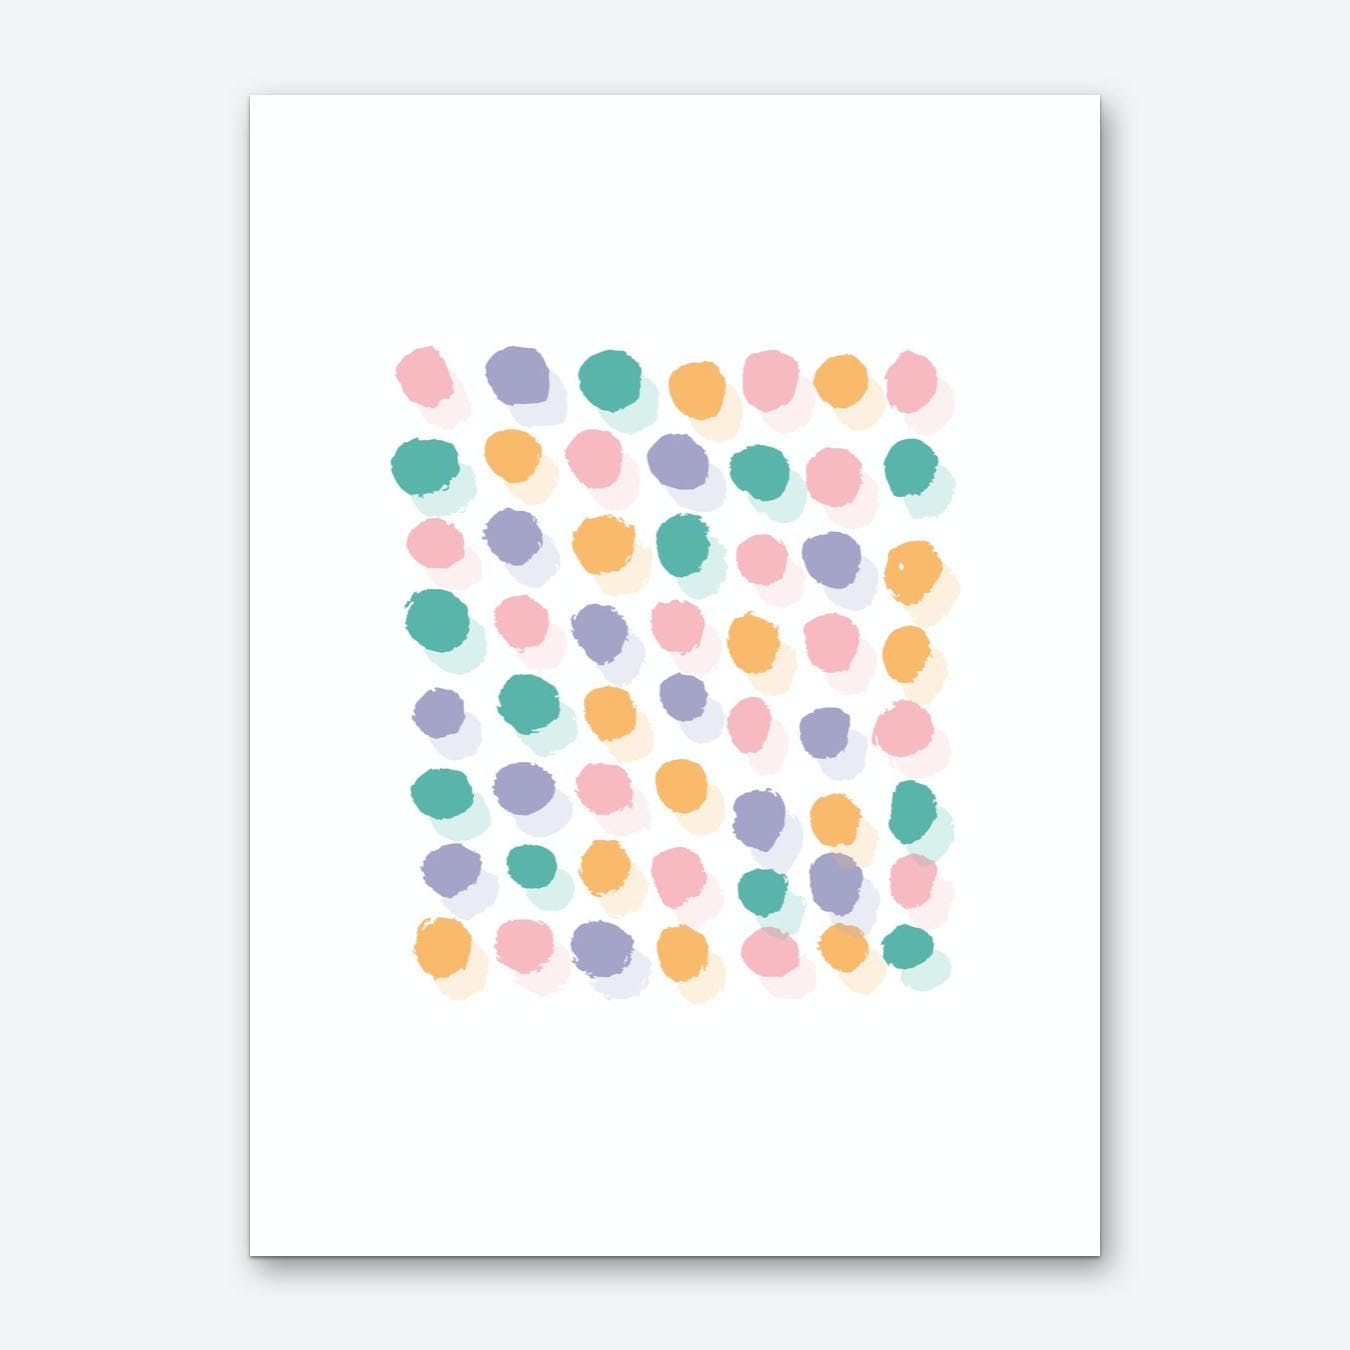 Abstract Pink and Orange Rectangle Paint Dots Art Print